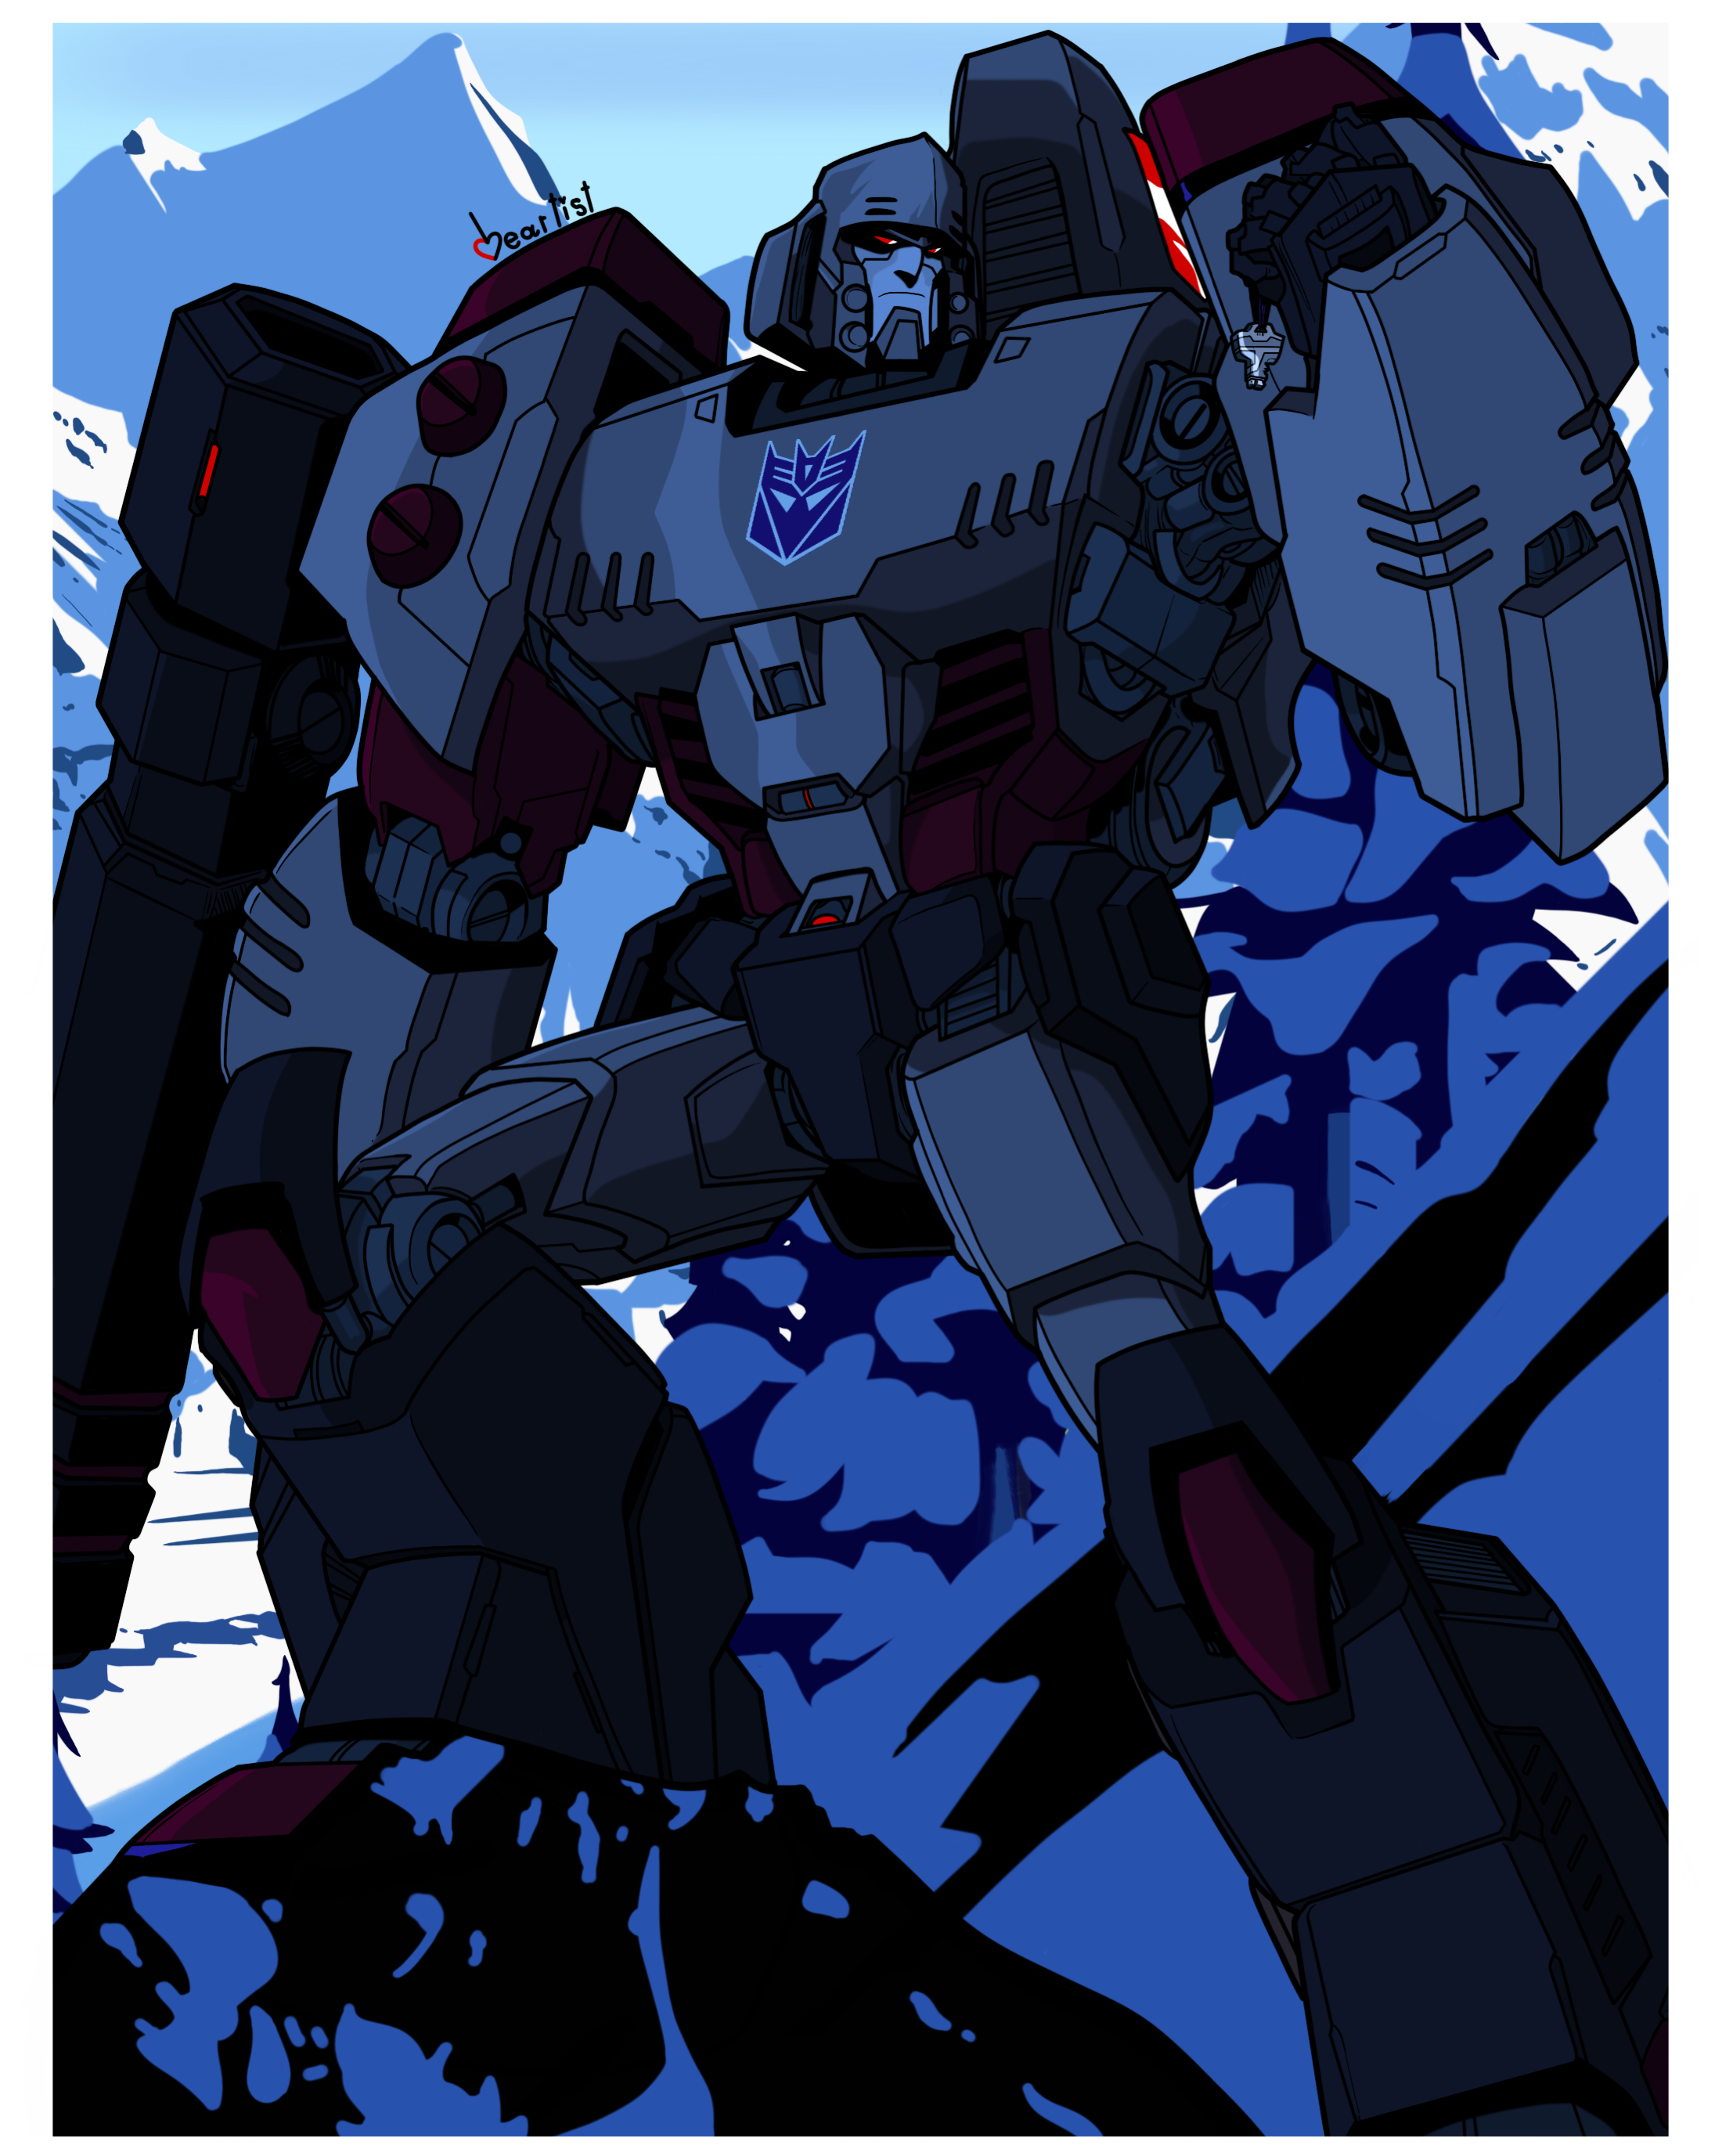 Transformers Tuesday: Glorious.